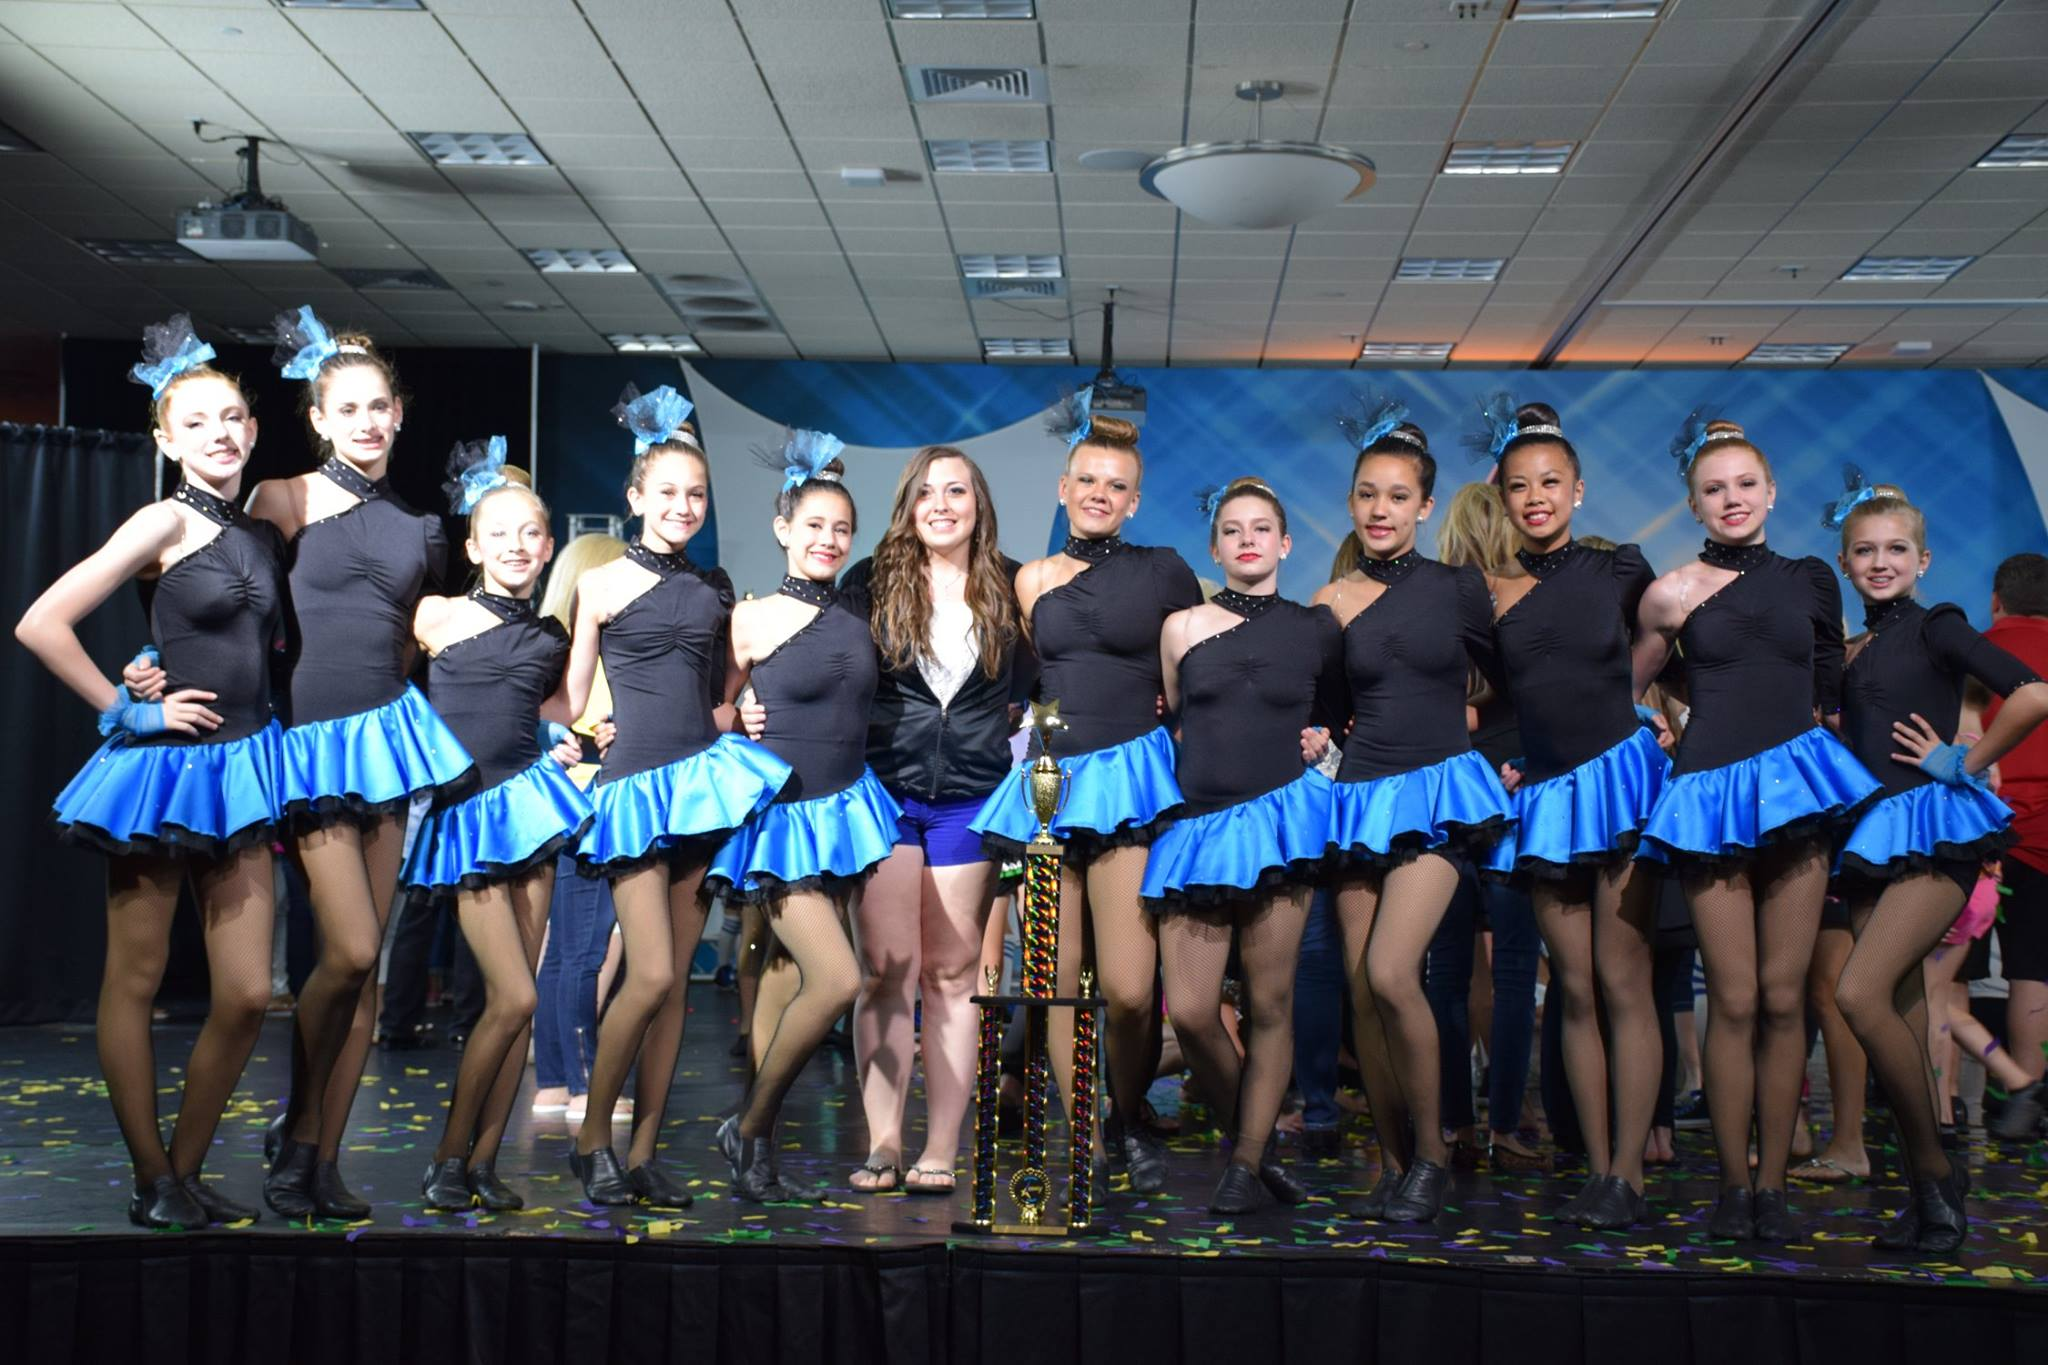 Beth Fowler School of Dance : Genoa and St. Charles Illinois – School of the Beth ...